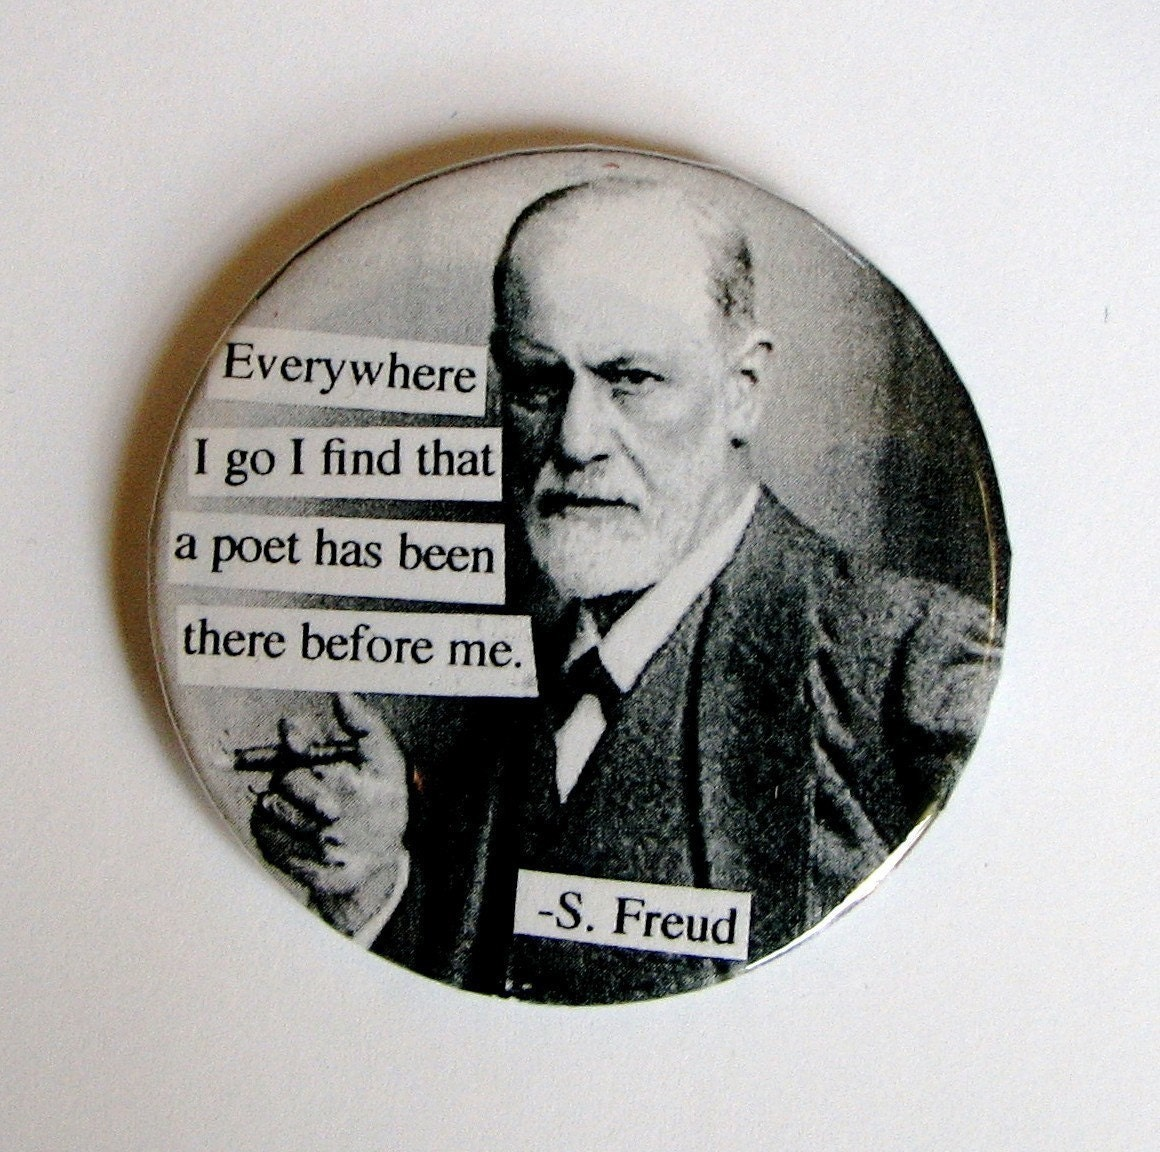 research paper on sigismund freud View and download sigmund freud essays examples also discover topics, titles, outlines, thesis statements, and conclusions for your sigmund freud.